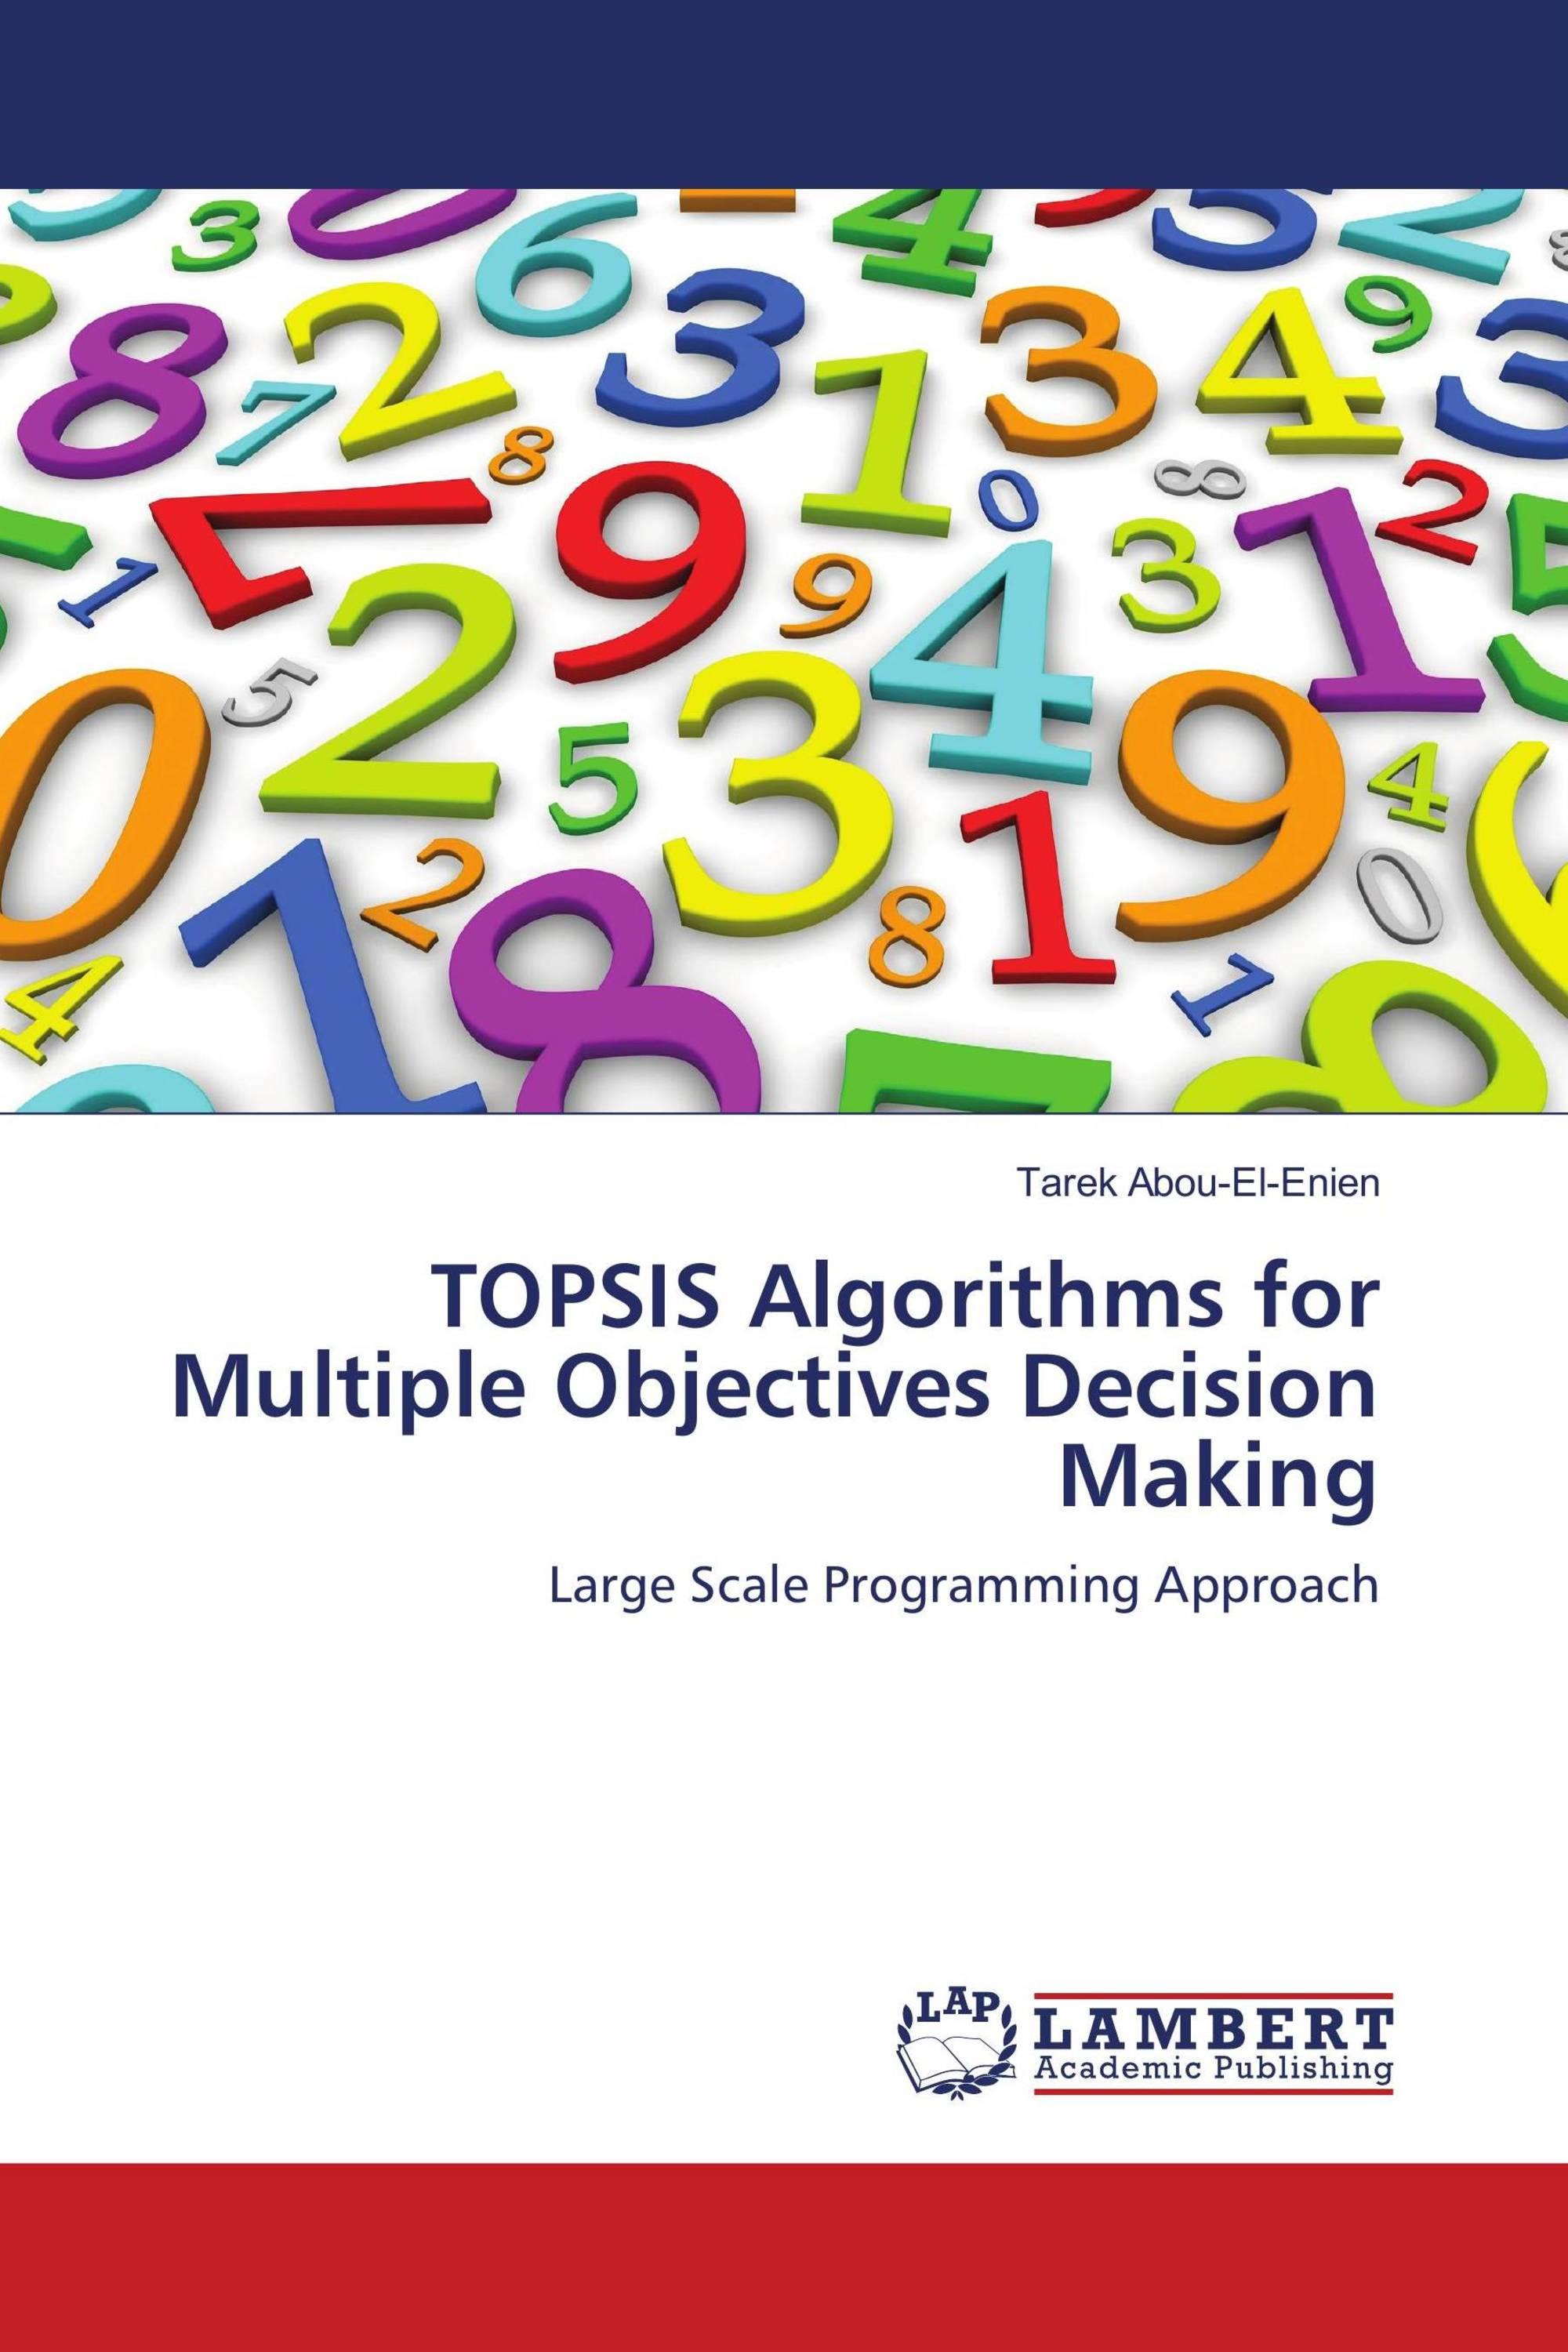 TOPSIS Algorithms for Multiple Objectives Decision Making